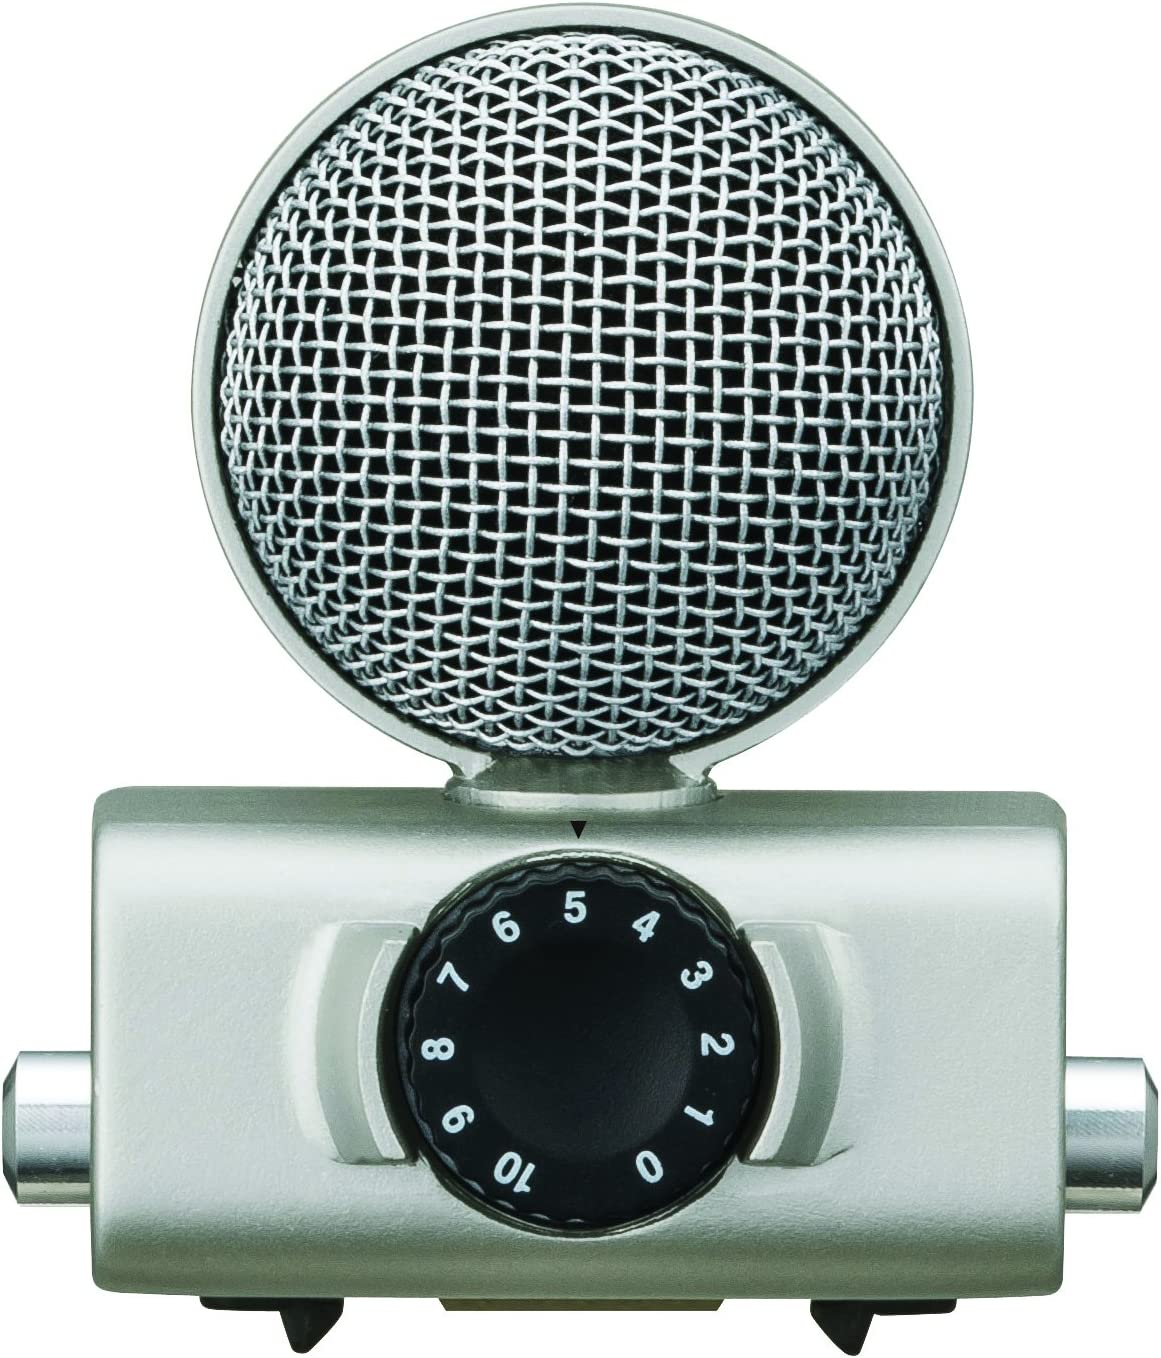 Zoom MSH-6 Mid-Side Microphone Capsule, Mono-Compatible Stereo Microphones for Film, Video, and Music, works with H5, H6, Q8, U-44, F1, F4, F8n, and F8